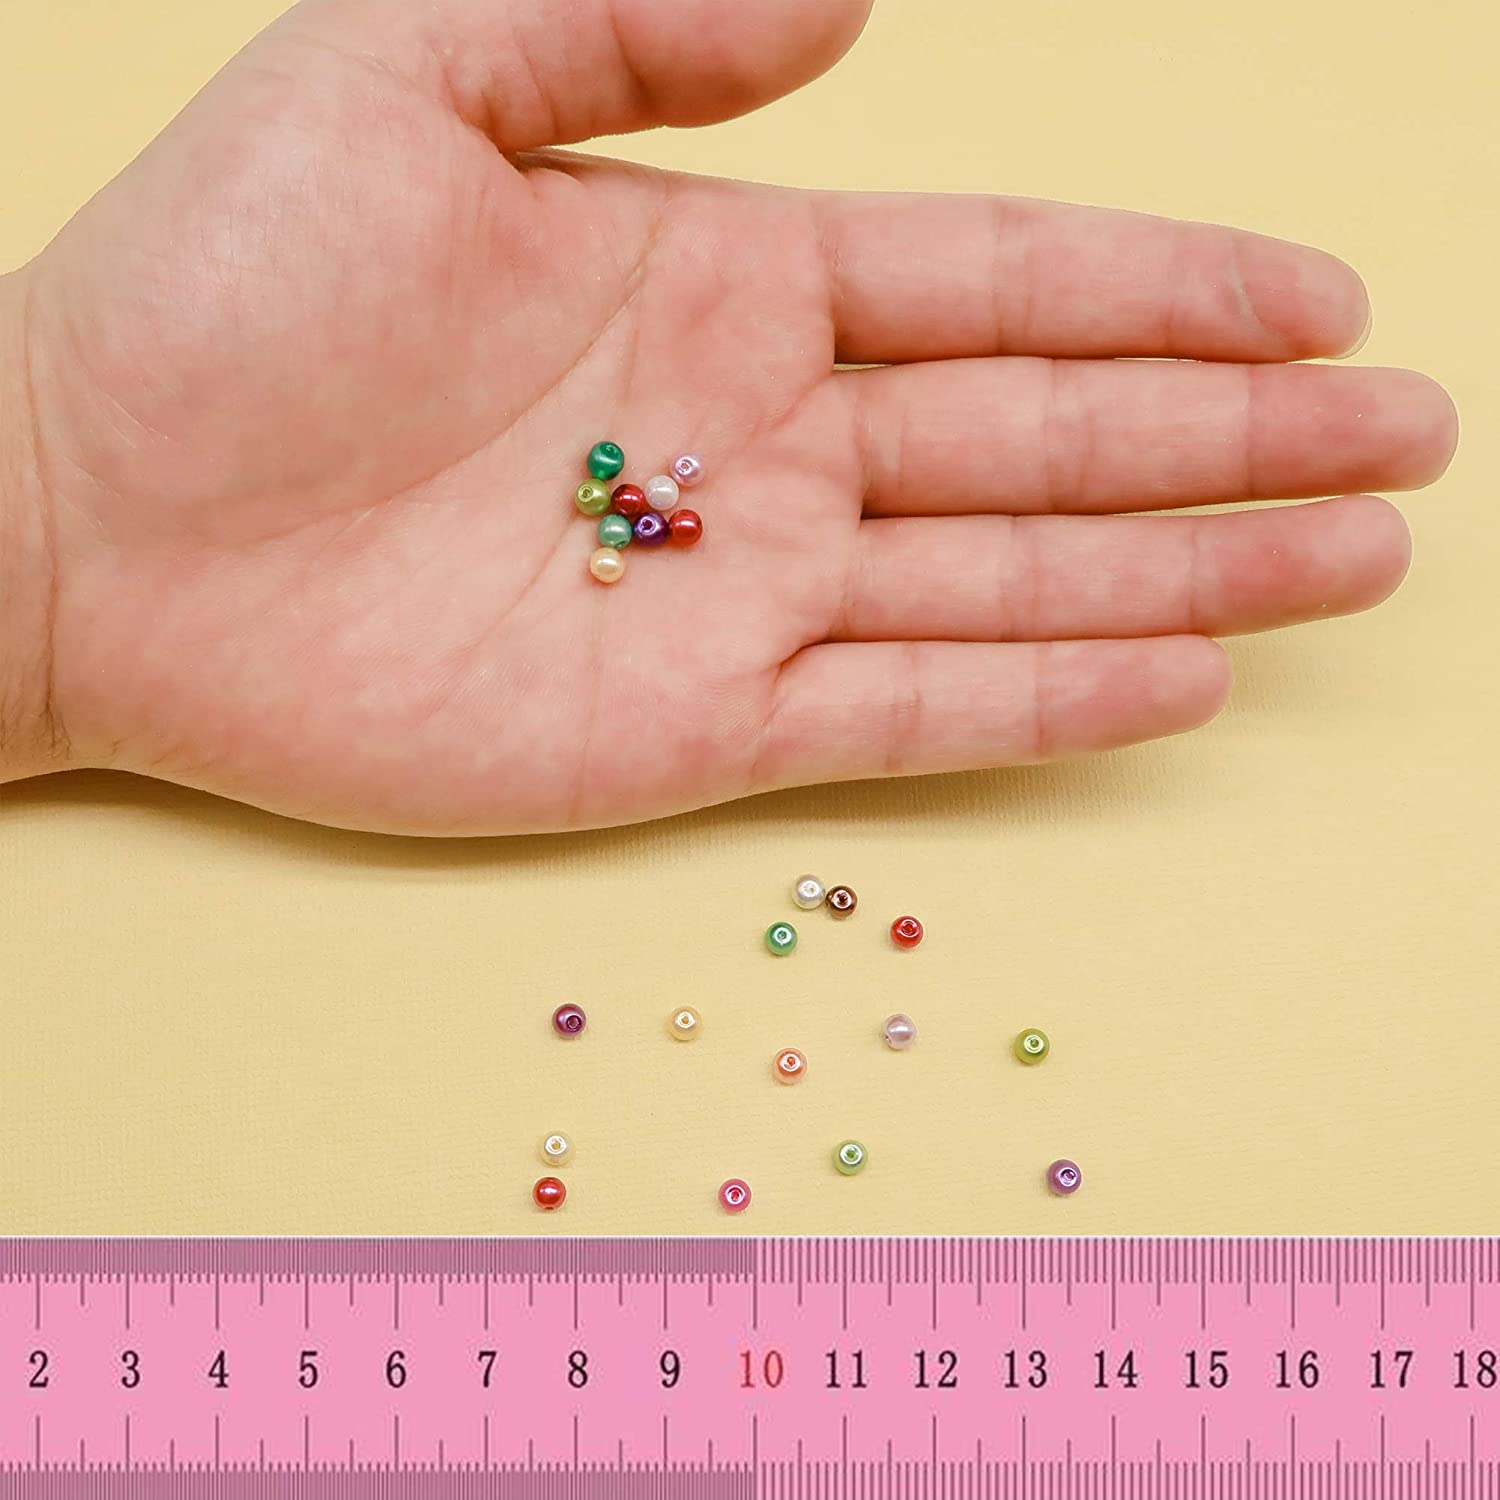 TOAOB 200pcs 4mm The Hole 1mm Glass Pearl Beads Round Loose Beads Multi Color for Handmade